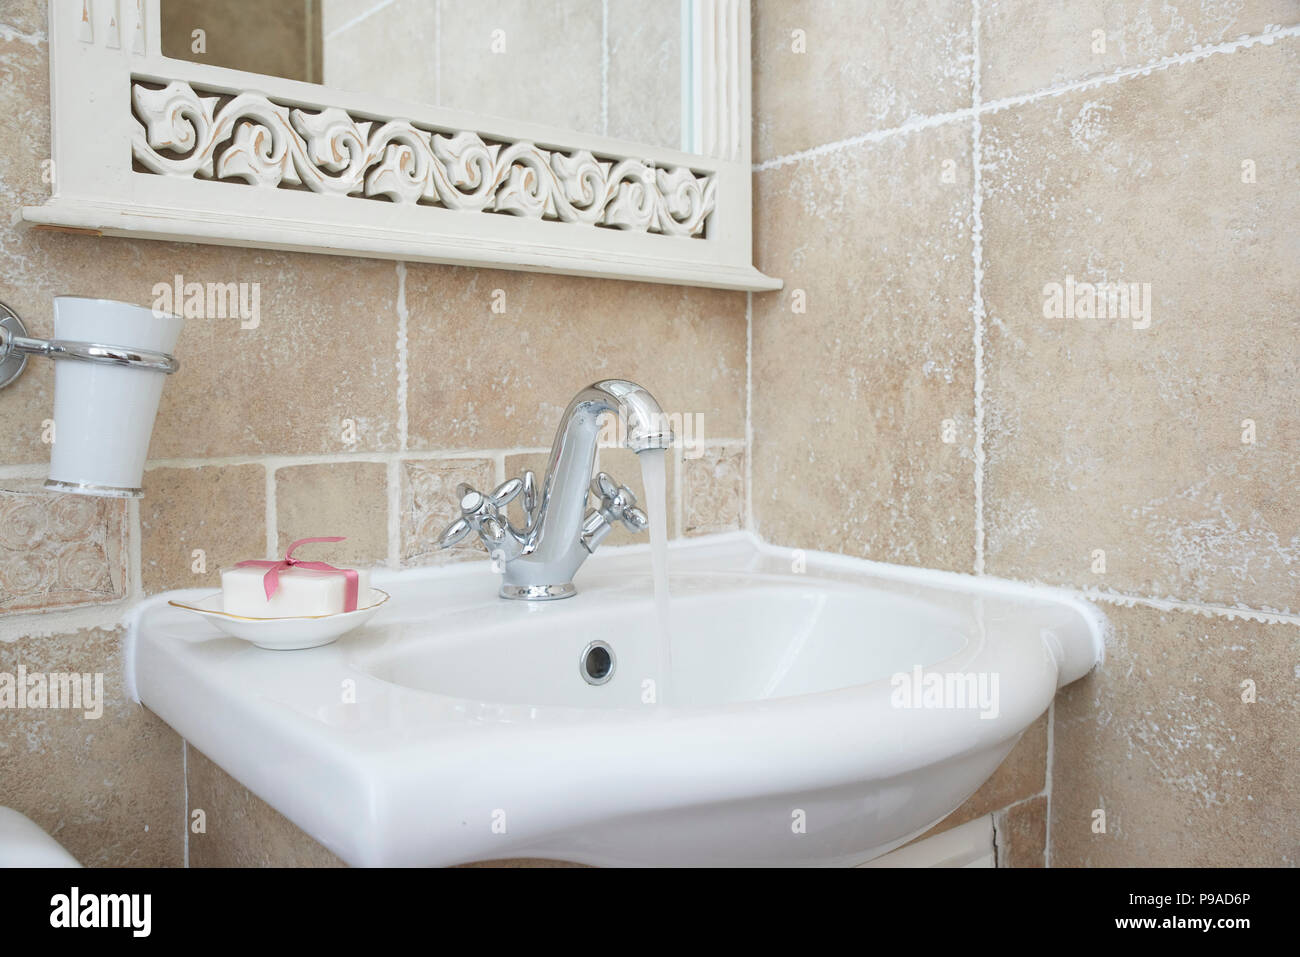 Shot Of Interior Of Bathroom With Sink Basin Faucet Open Chrome